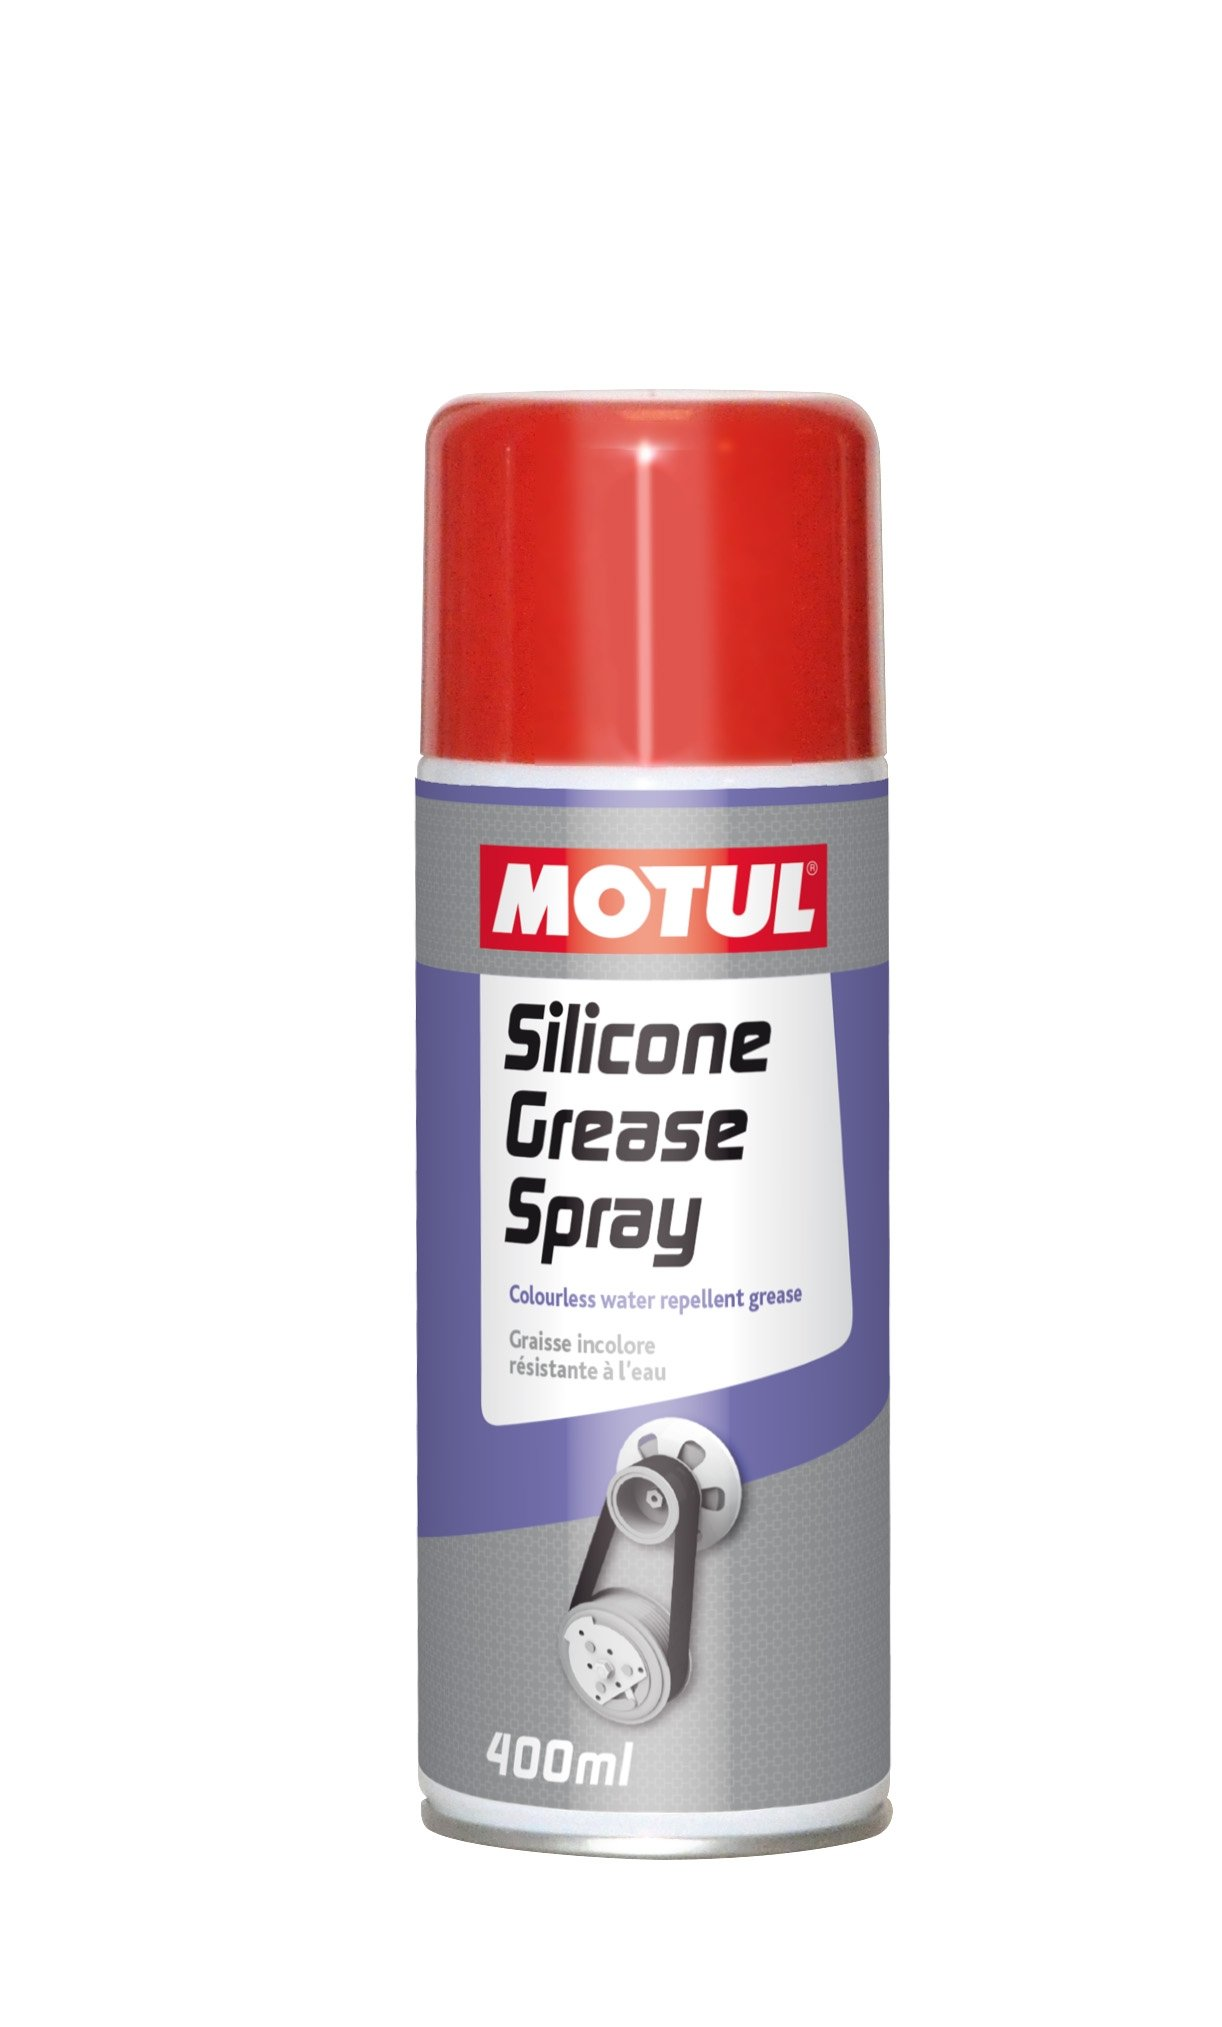 Motul Silicone Grease Spray (400ml)-400 мл